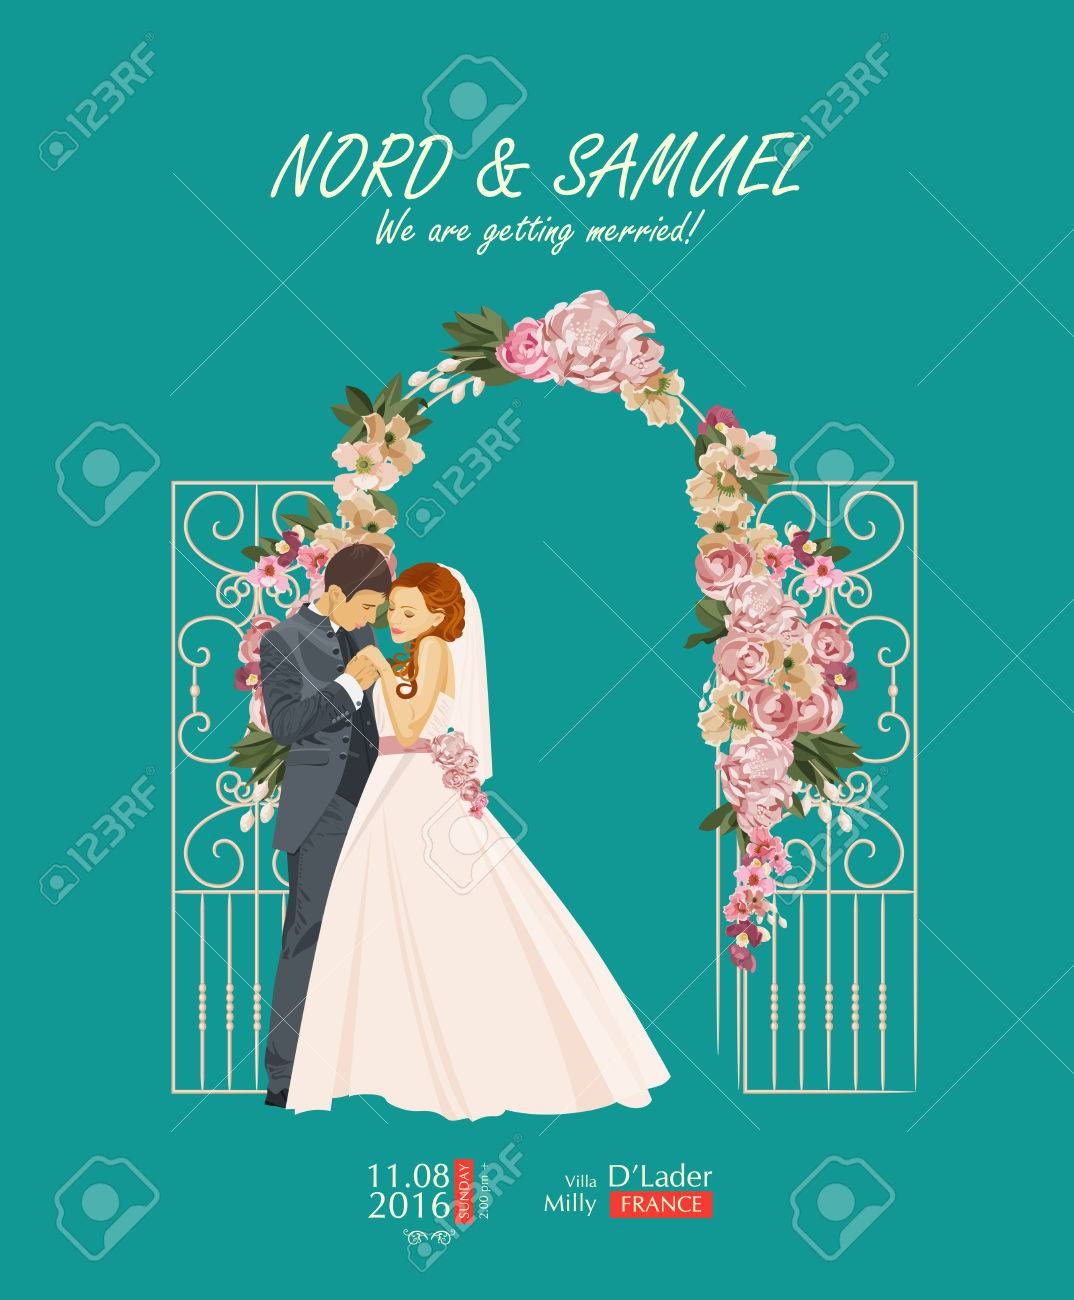 Wedding Vintage Invitation Card Template Vector With Bride And